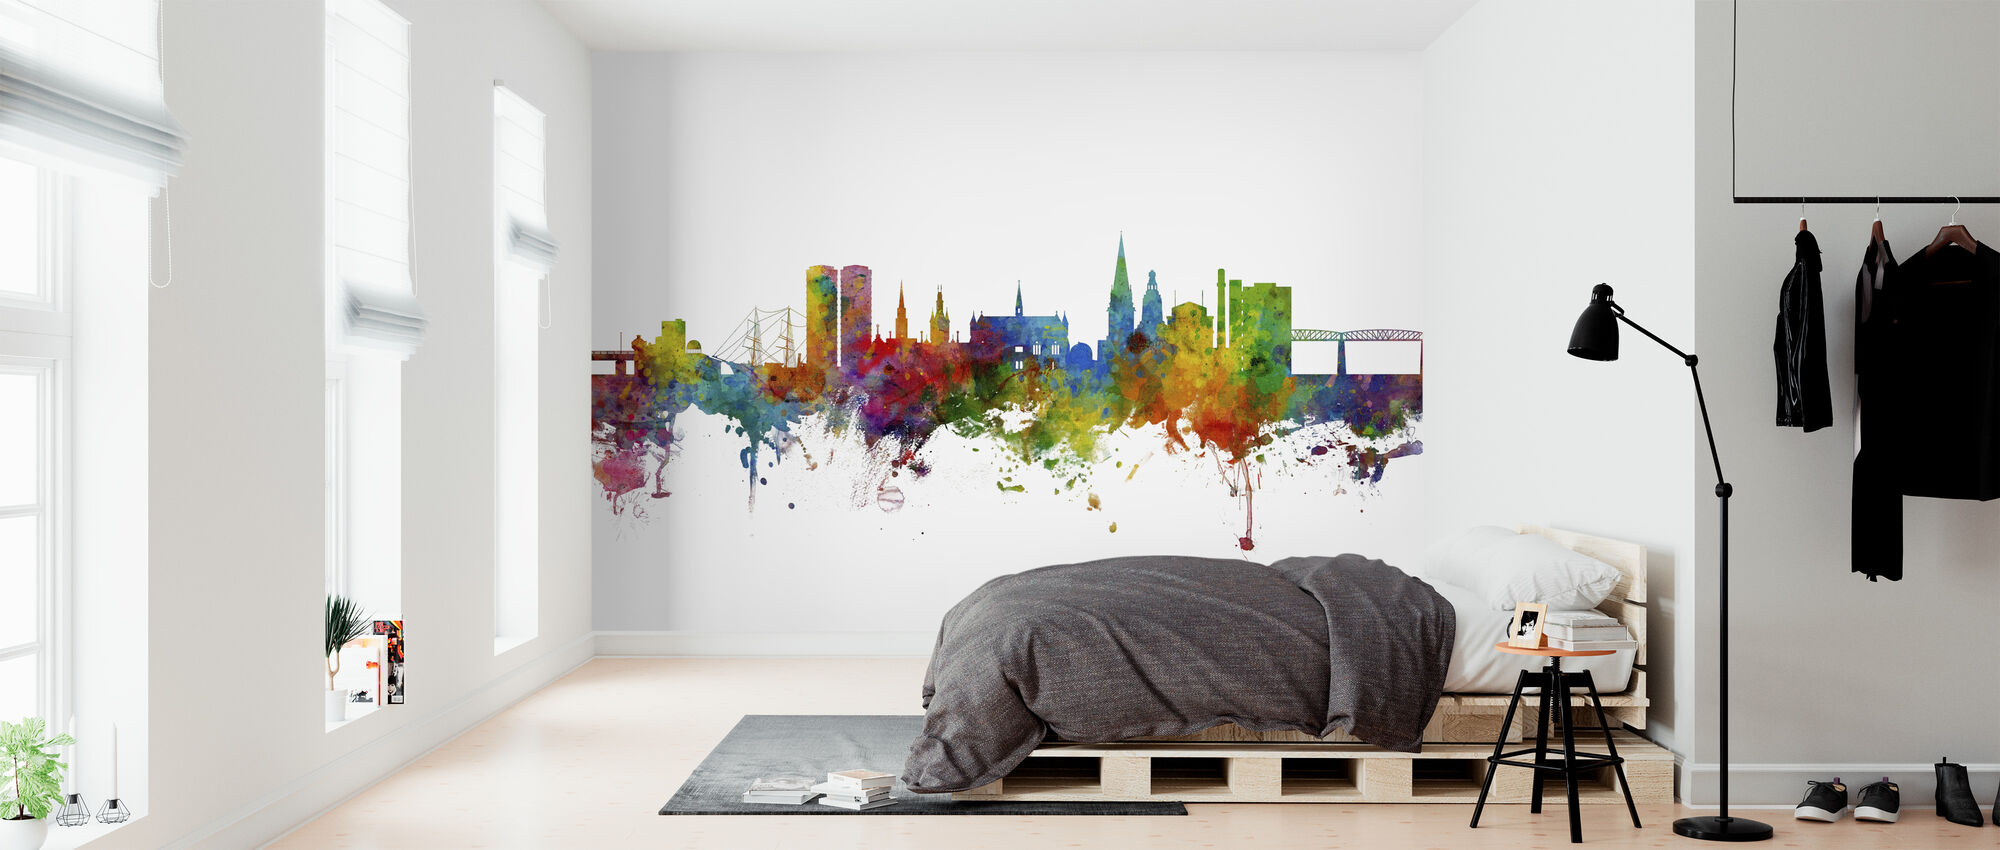 Dundee Scotland Skyline - Wallpaper - Bedroom